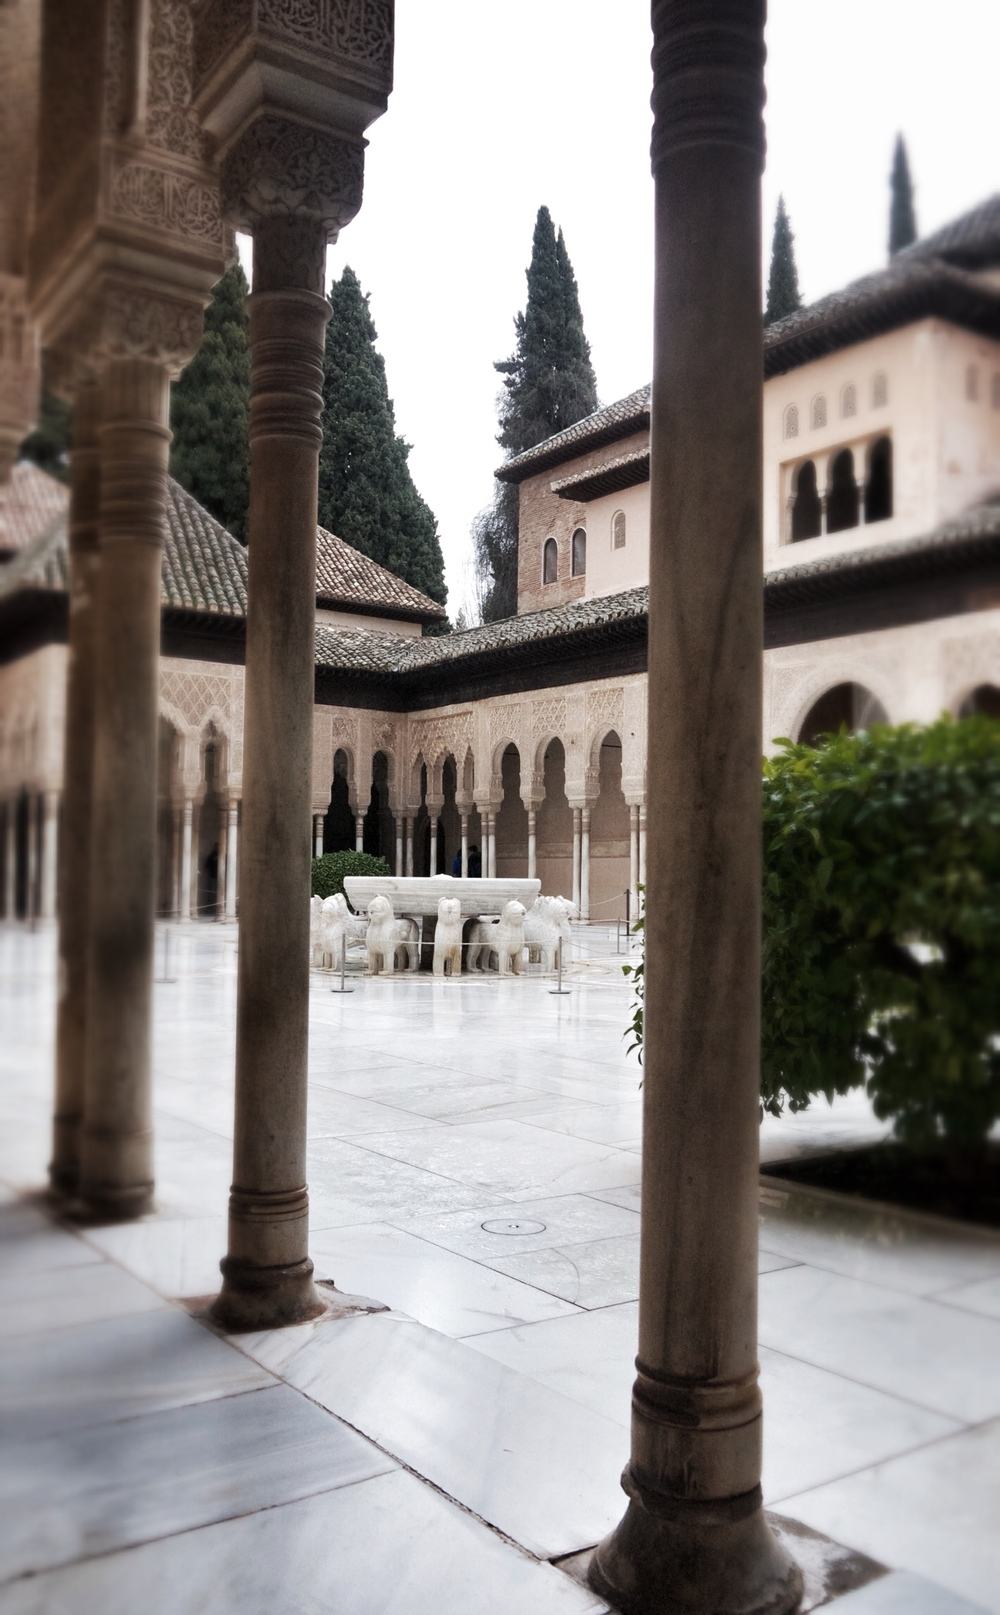 The Lion Courtyard